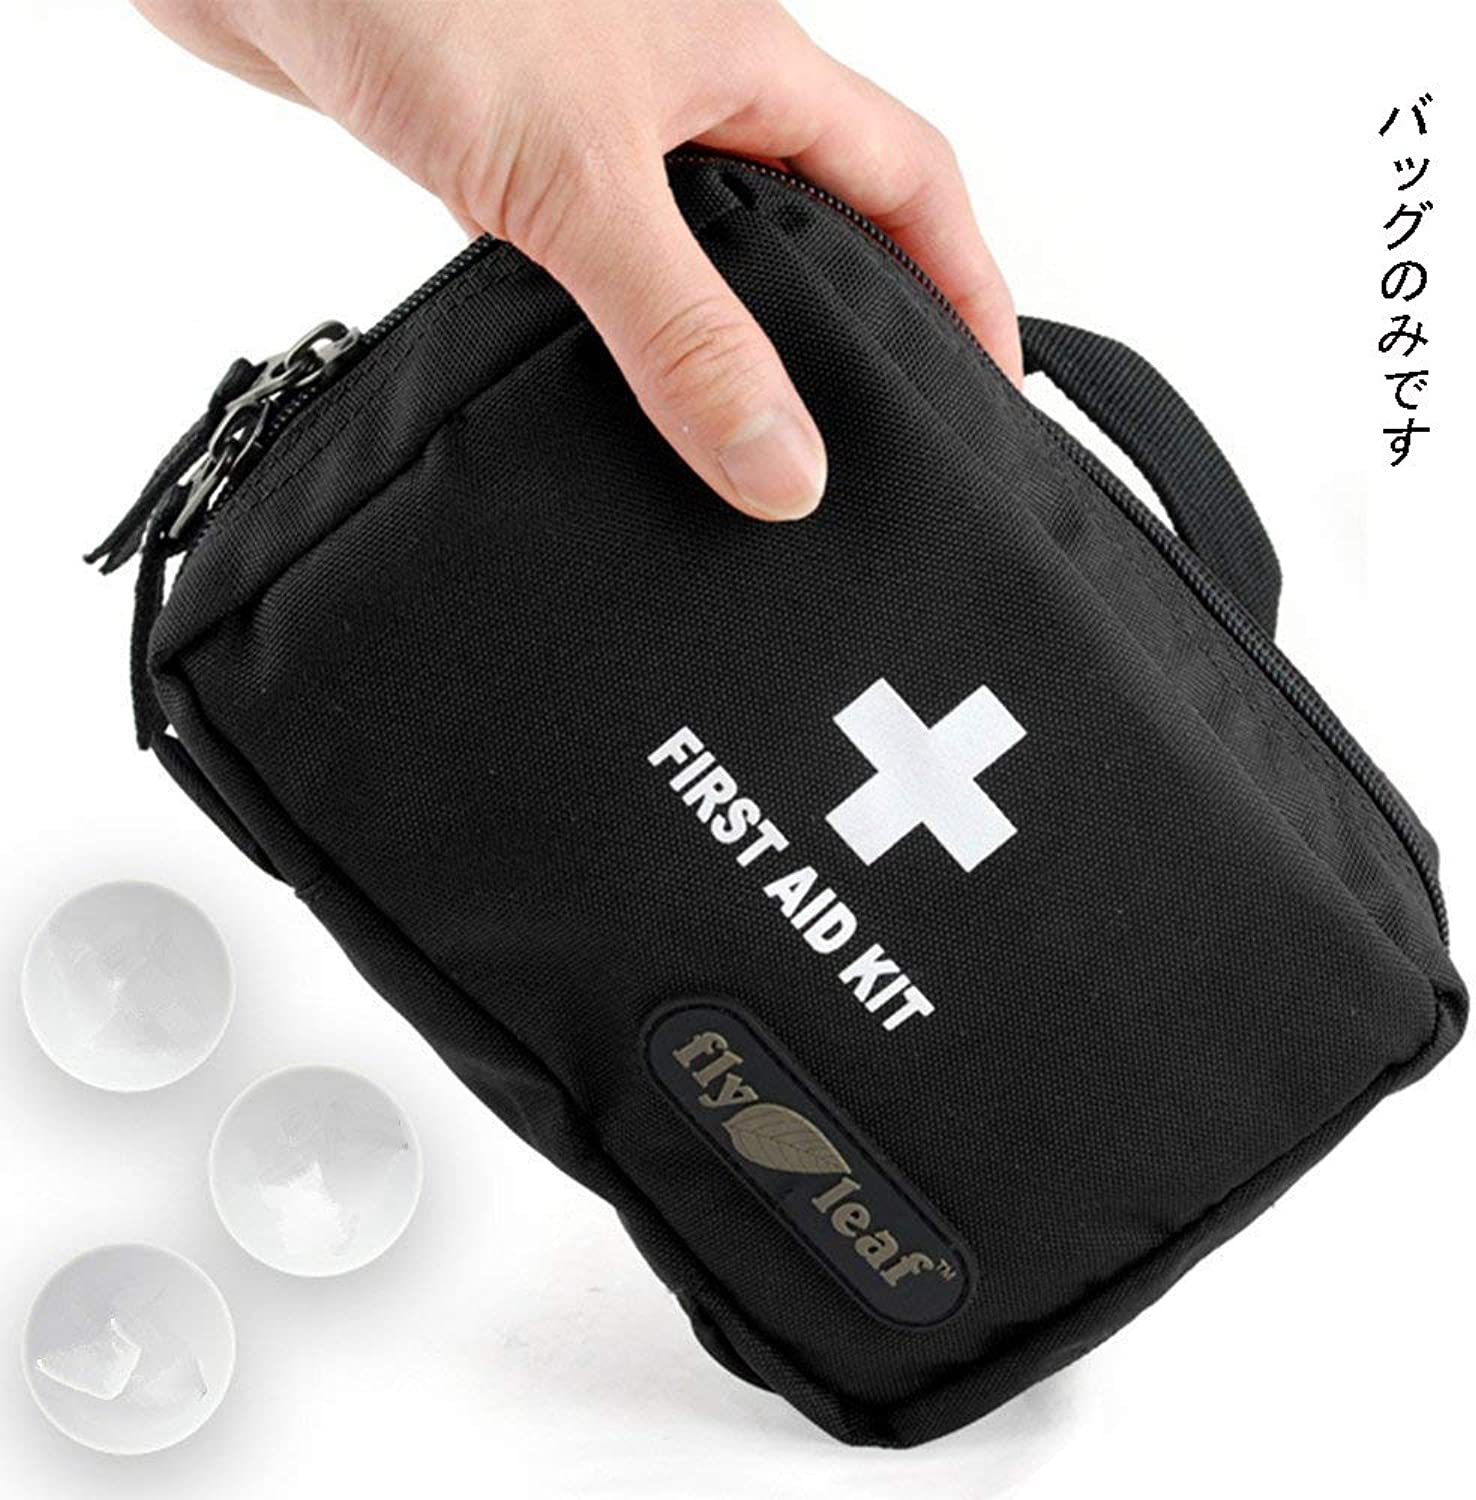 Dewel first aid kit waterproof separating net two-layer handbag-seat mobile phone and storage convenient fully open fasteners household goods travel   business trip   outdoor   climbing   home first aid kit mini emergency Paggu